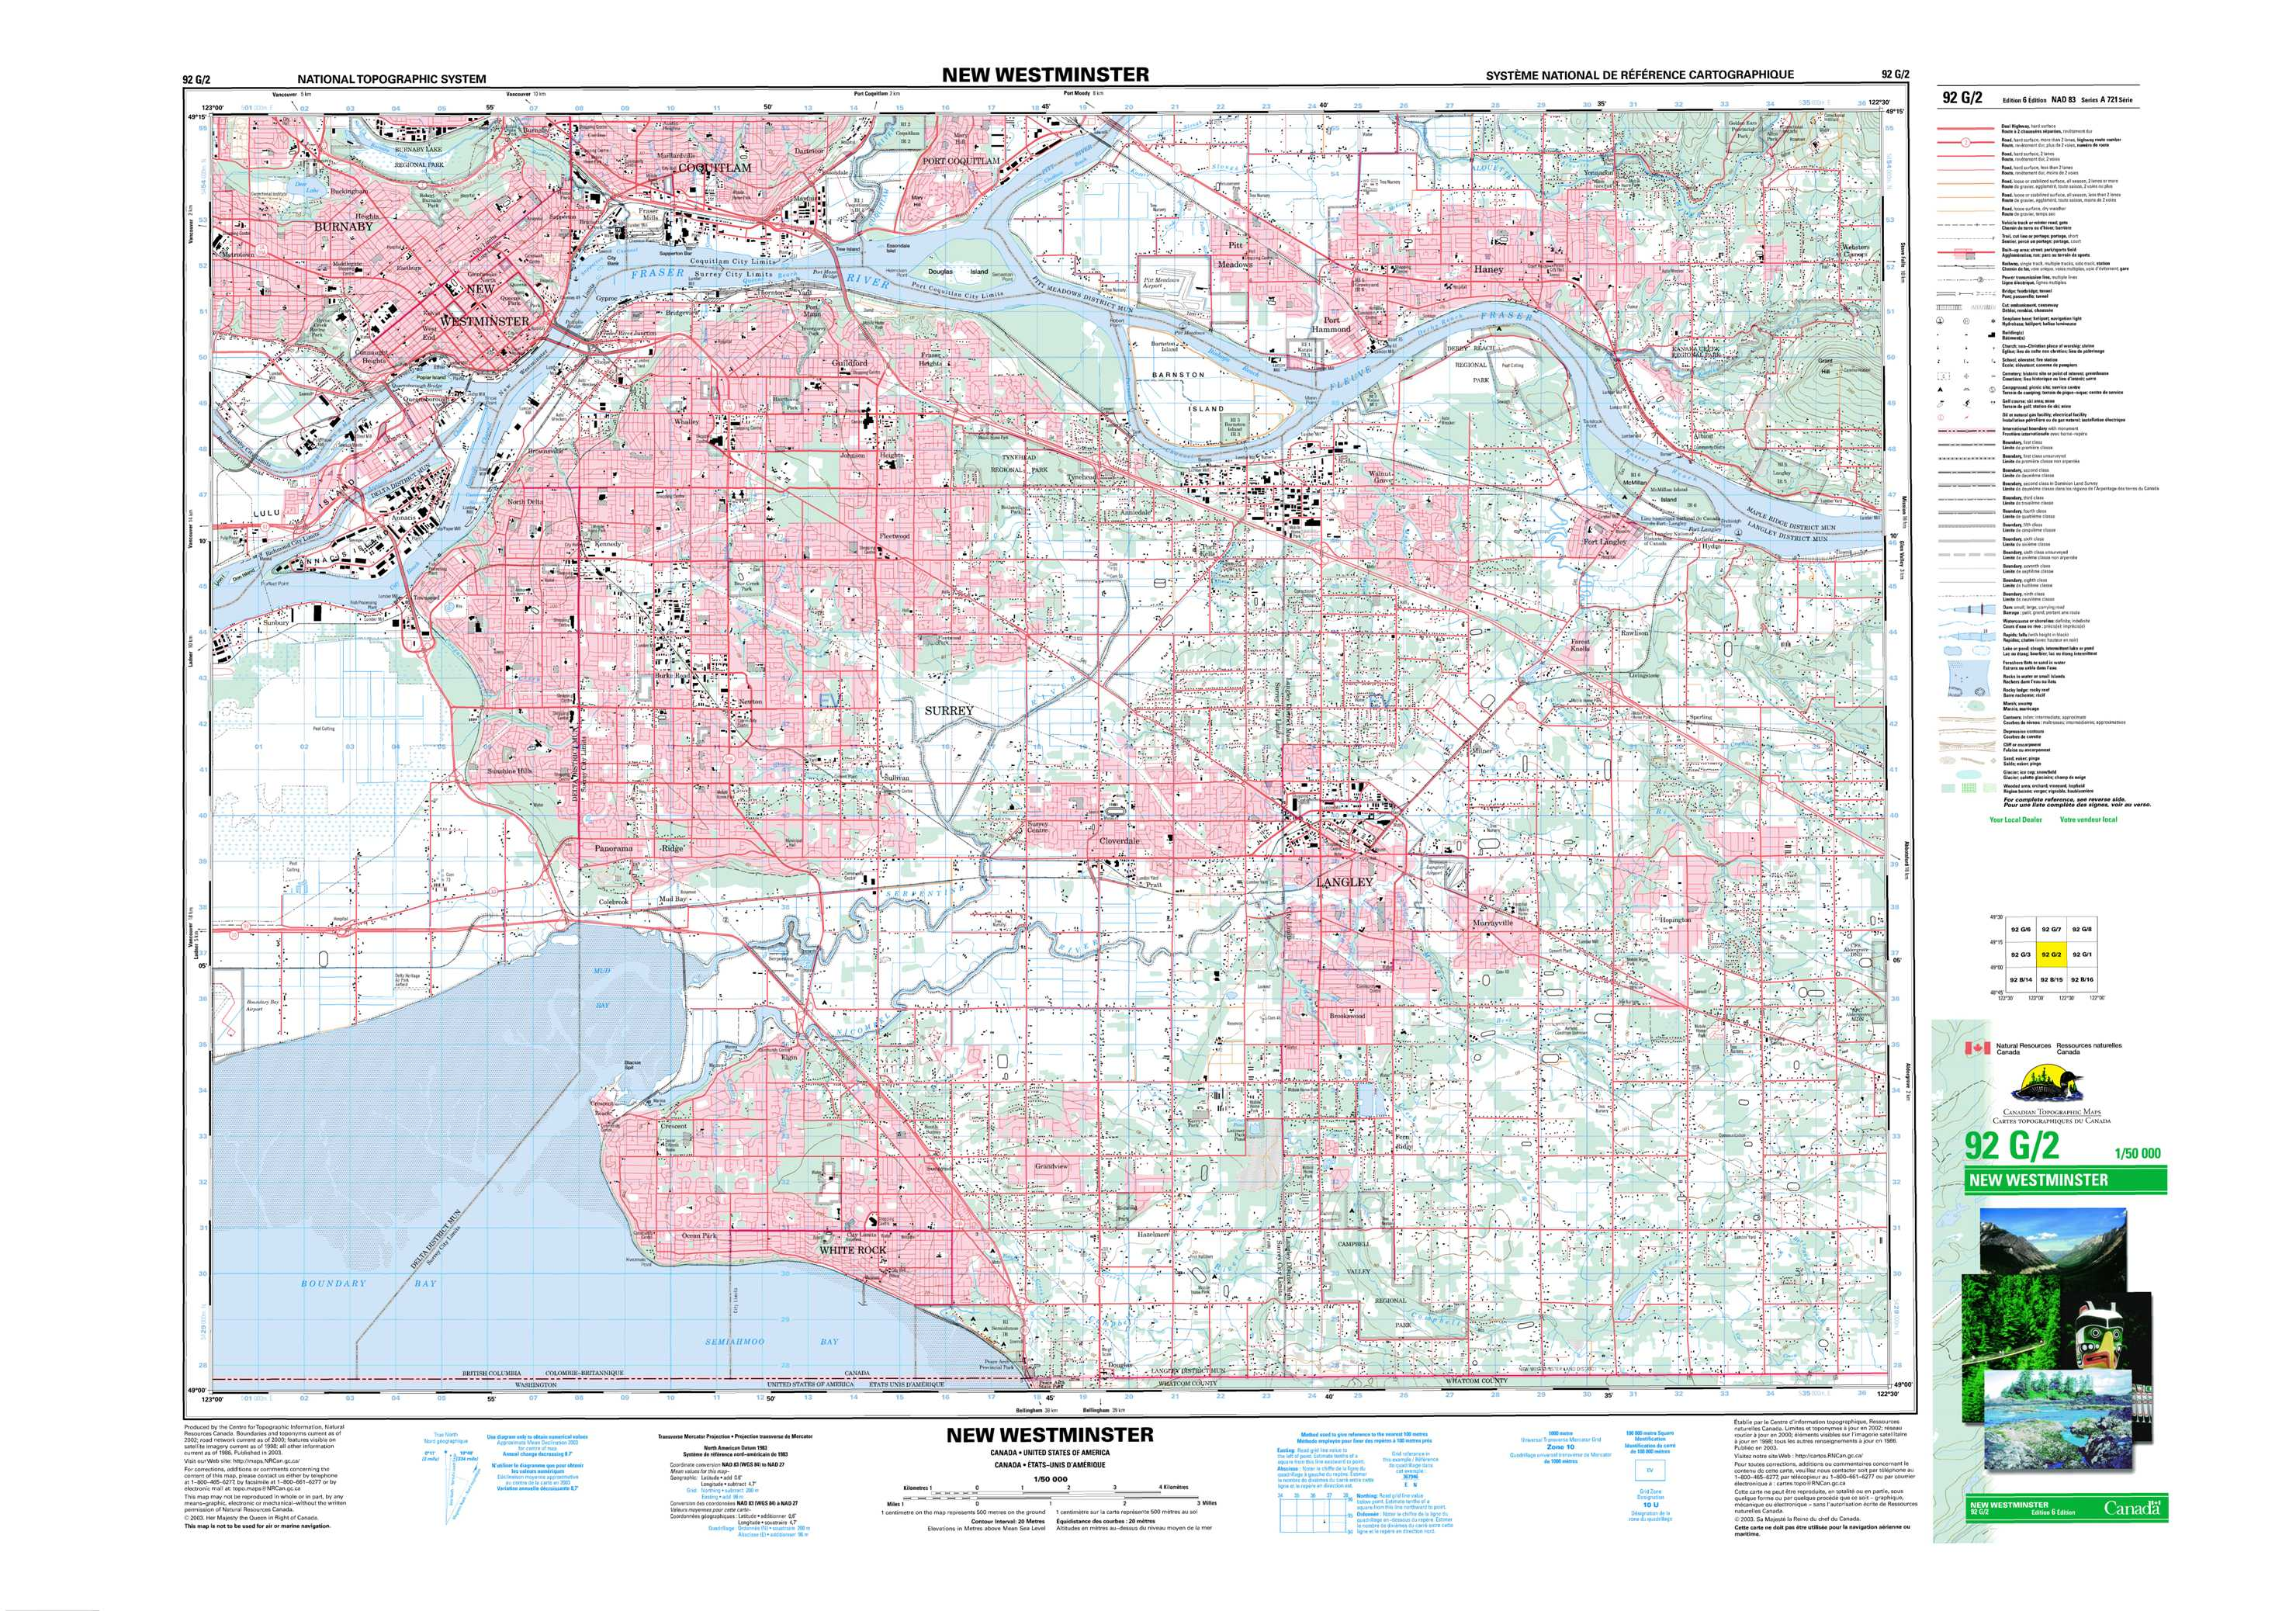 New Westminster BC Maps Online - Free Topographic Map Sheet